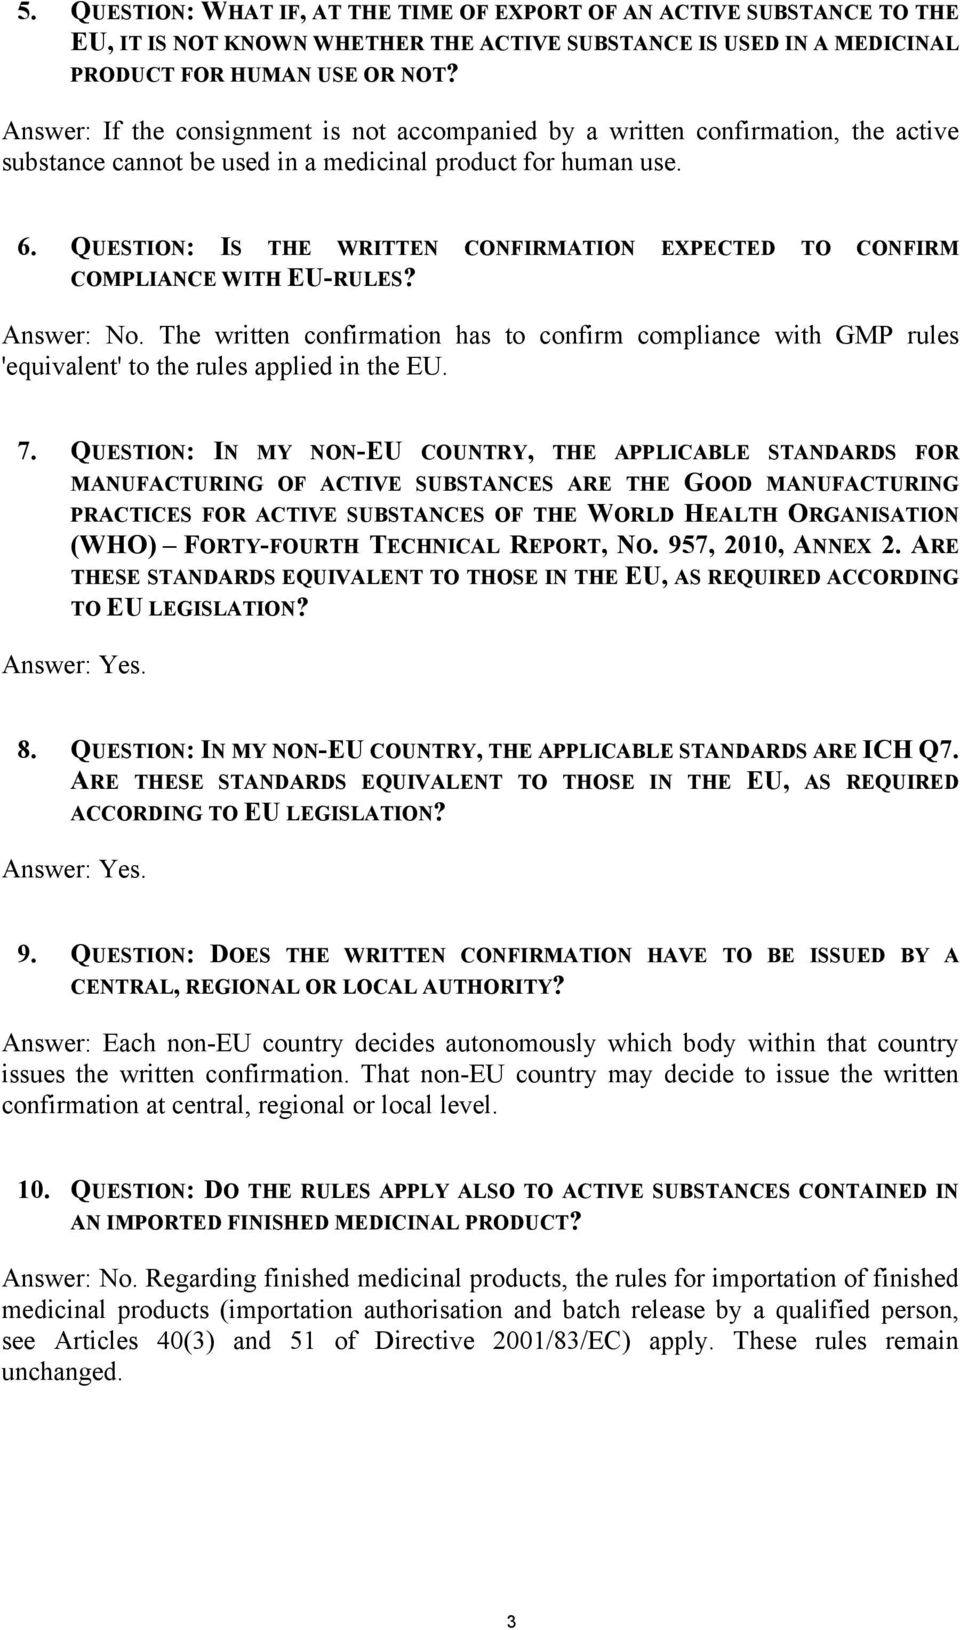 QUESTION: IS THE WRITTEN CONFIRMATION EXPECTED TO CONFIRM COMPLIANCE WITH EU-RULES? Answer: No.